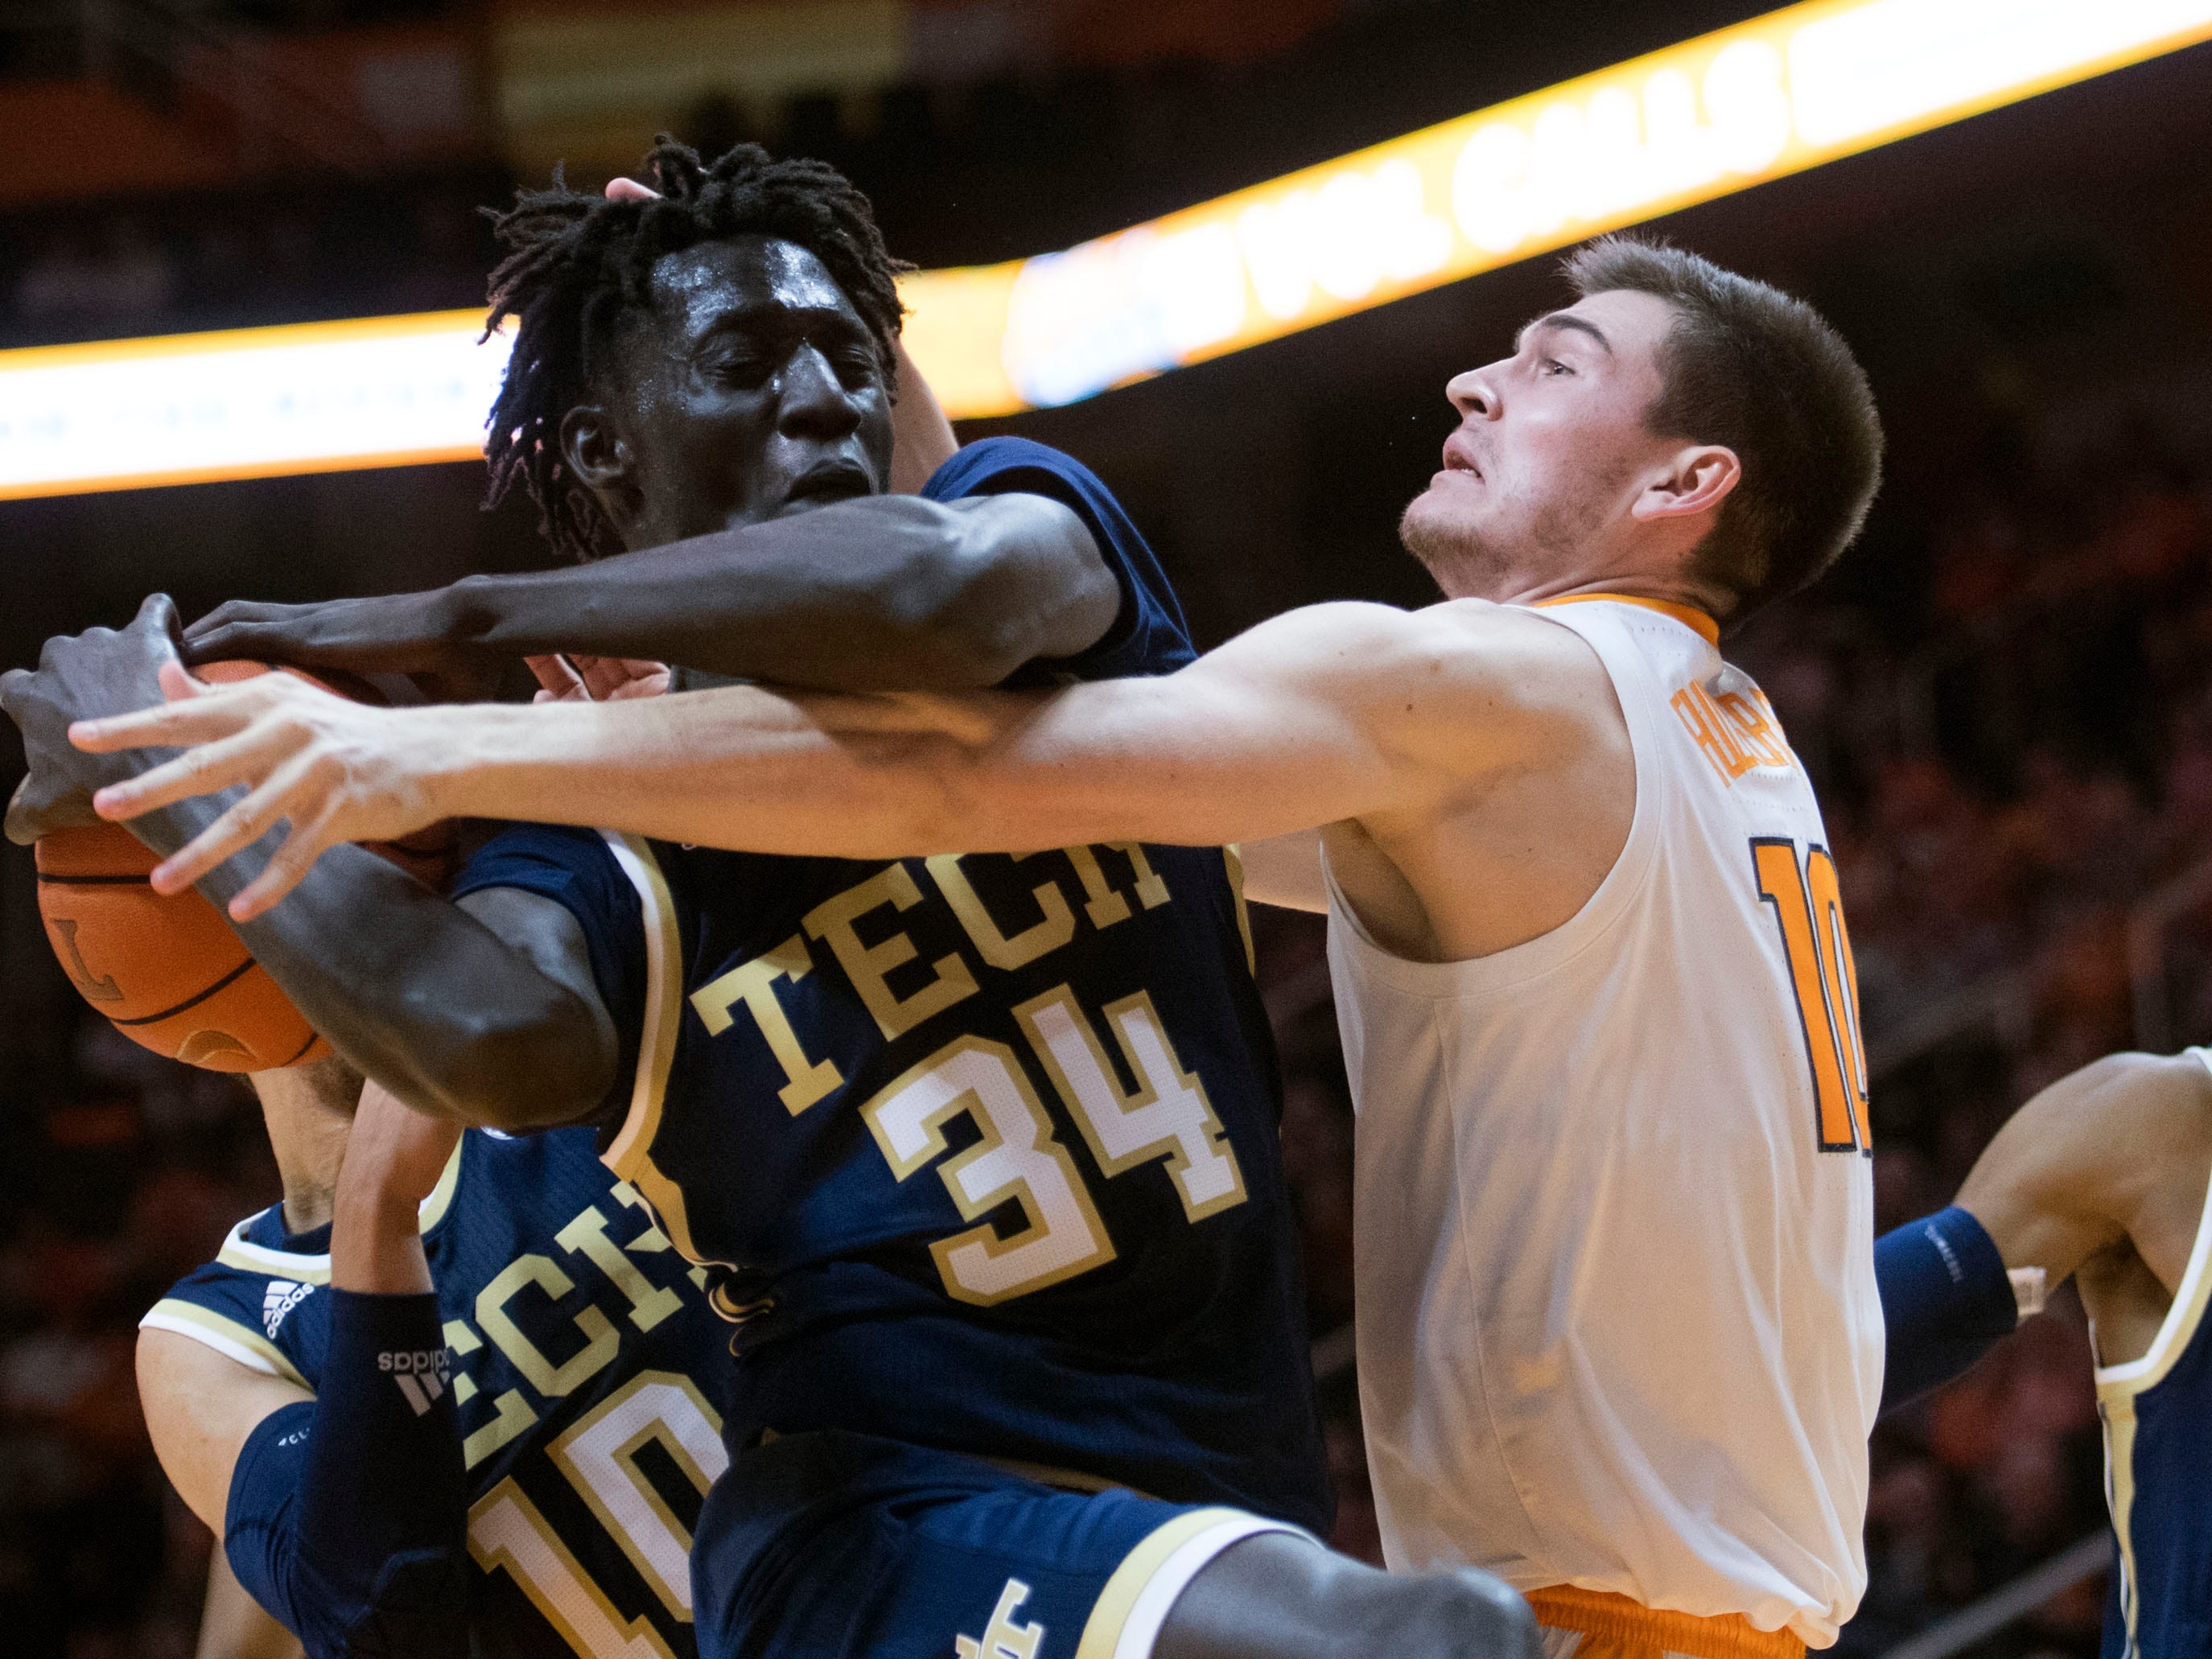 Tennessee's John Fulkerson (10) and Georgia Tech's Abdoulaye Gueye (34) go after a rebound at Thompson-Boling Arena on Tuesday, November 13, 2018.